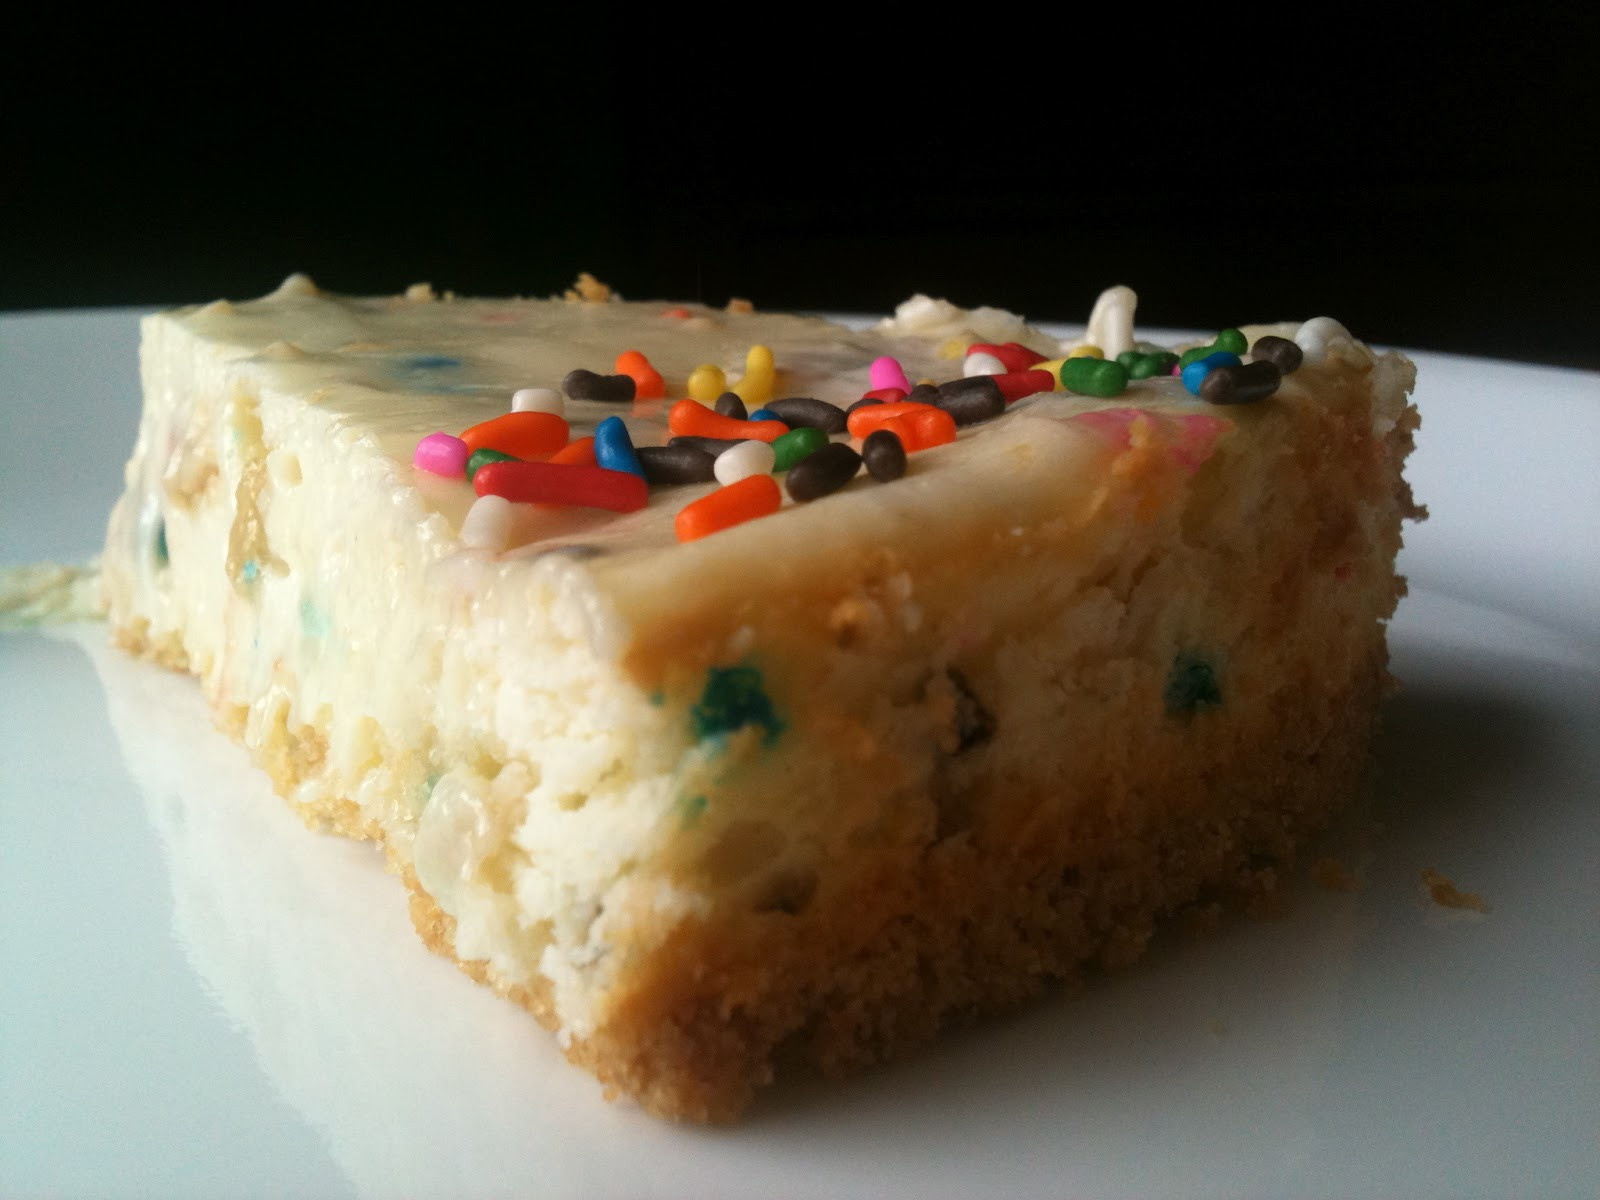 Best ideas about Birthday Cake Cheesecake . Save or Pin Birthday Cake Cheesecake Crackerjack23 Now.